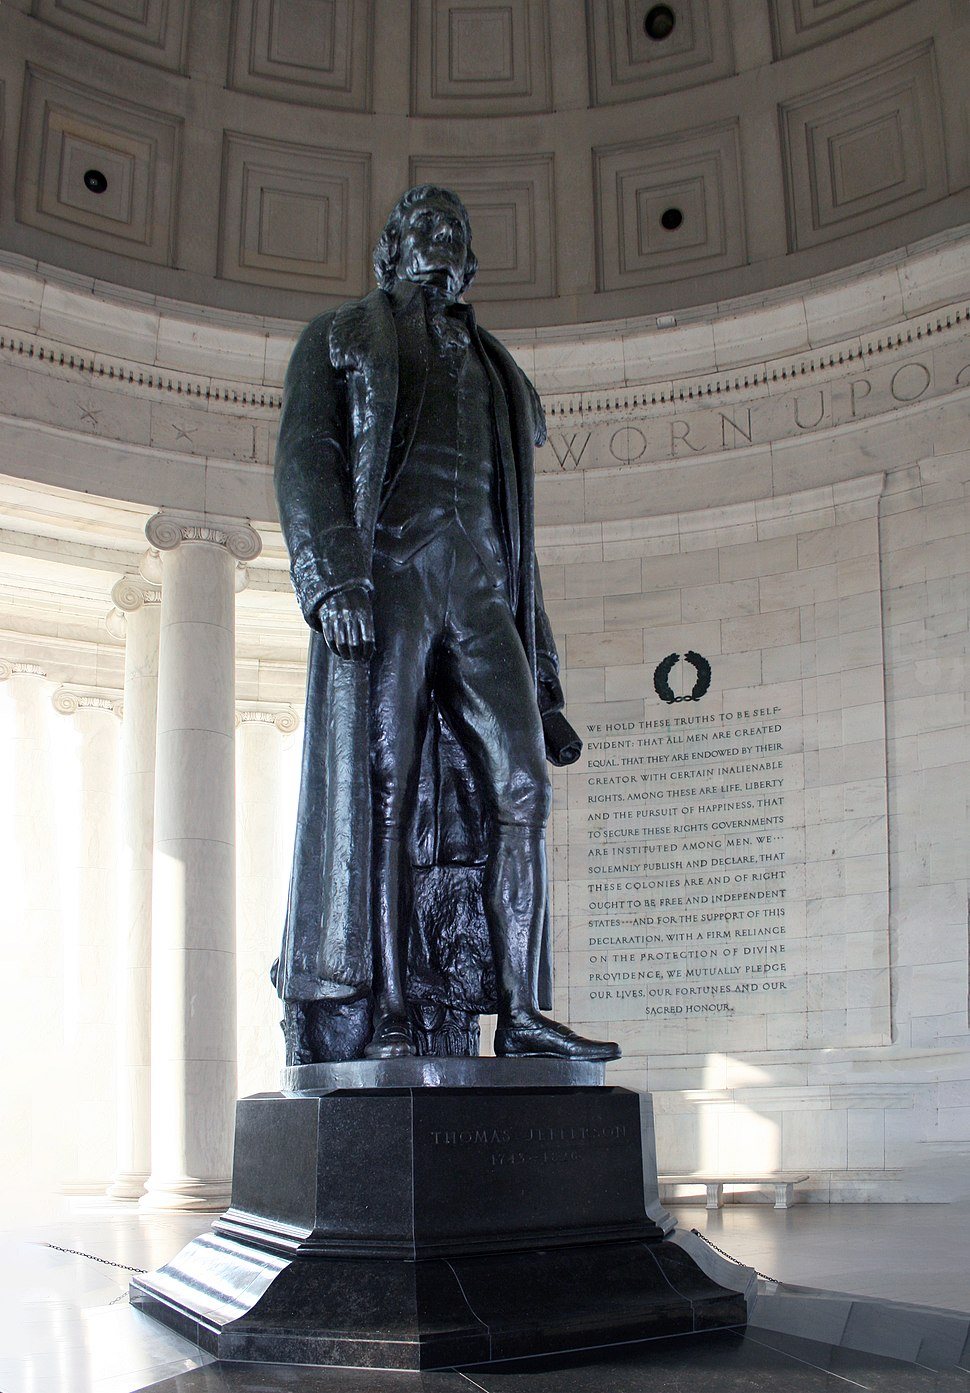 Statue of Thomas Jefferson inside Jefferson Memorial